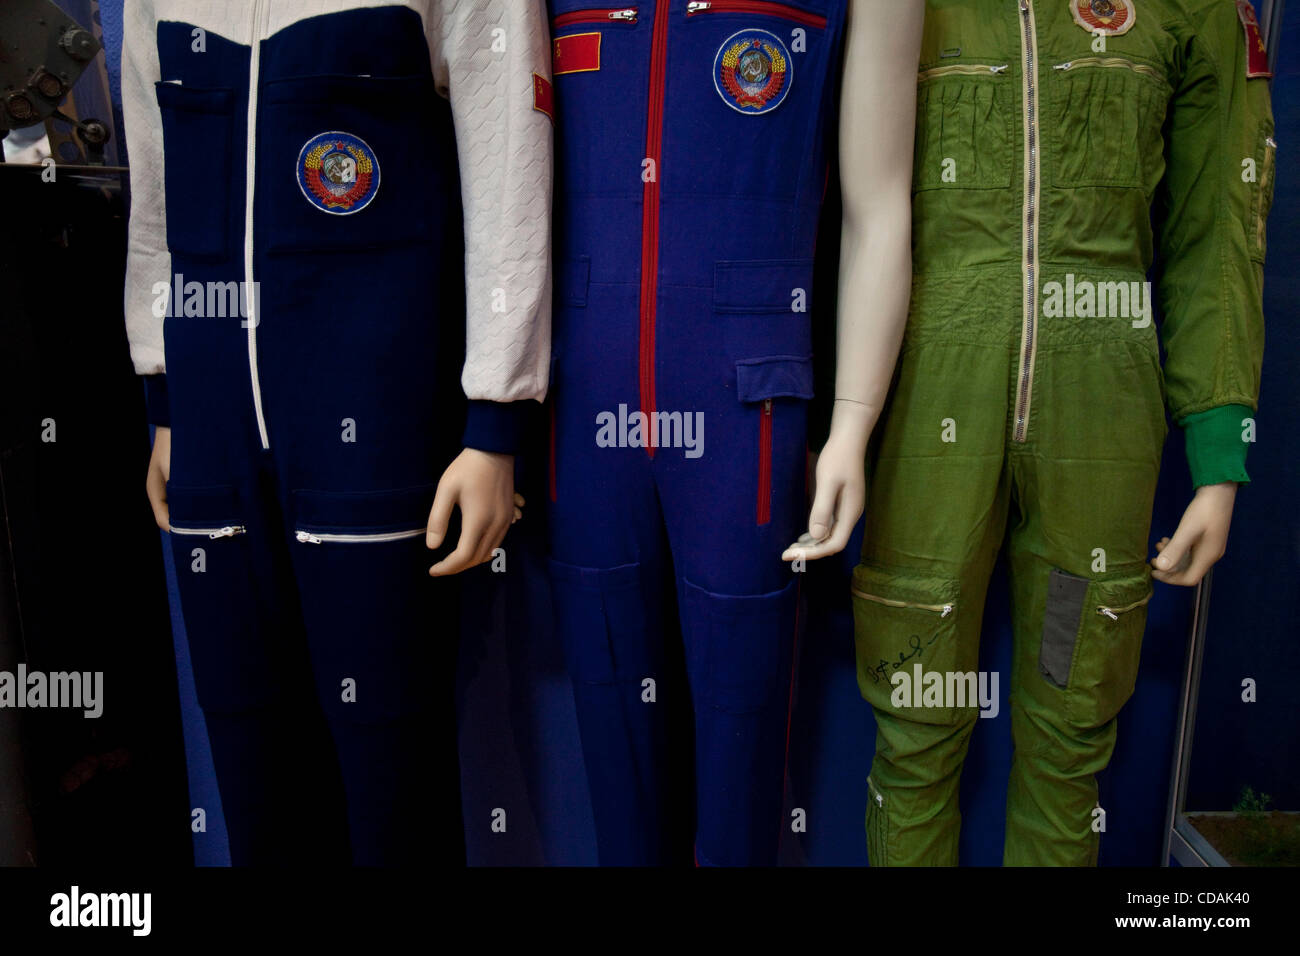 Sep 03, 2010 - Baikonur Cosmodrome, Kazakhstan - Sporty designs of sweat suits for russian cosmonauts, Museum of - Stock Image